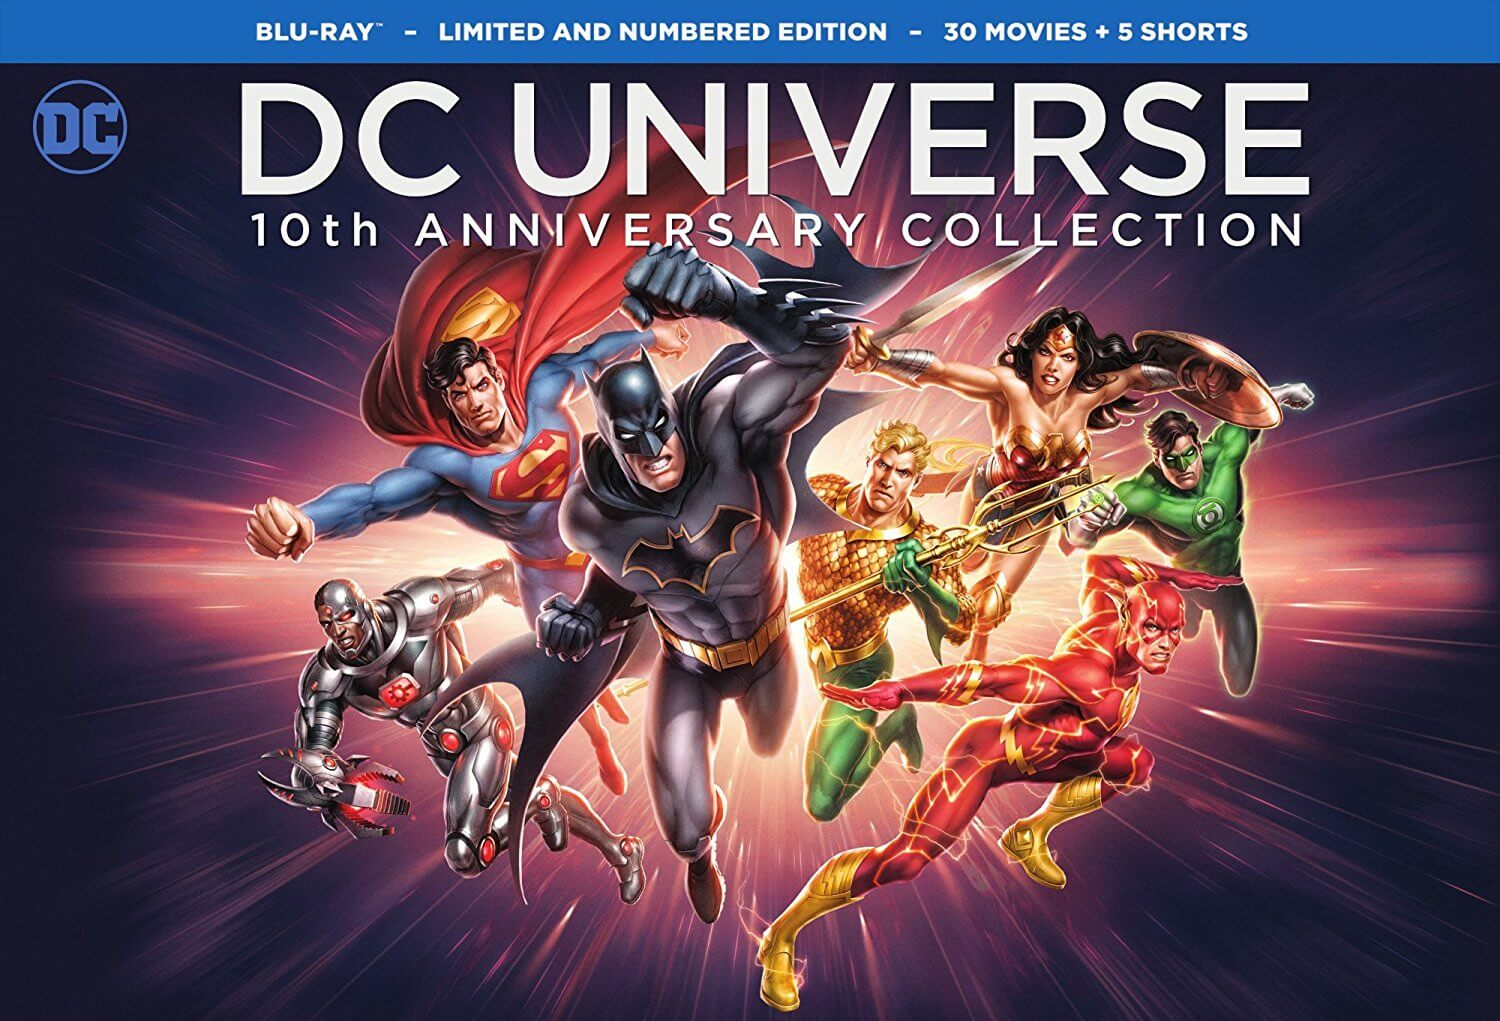 DC Universe box set